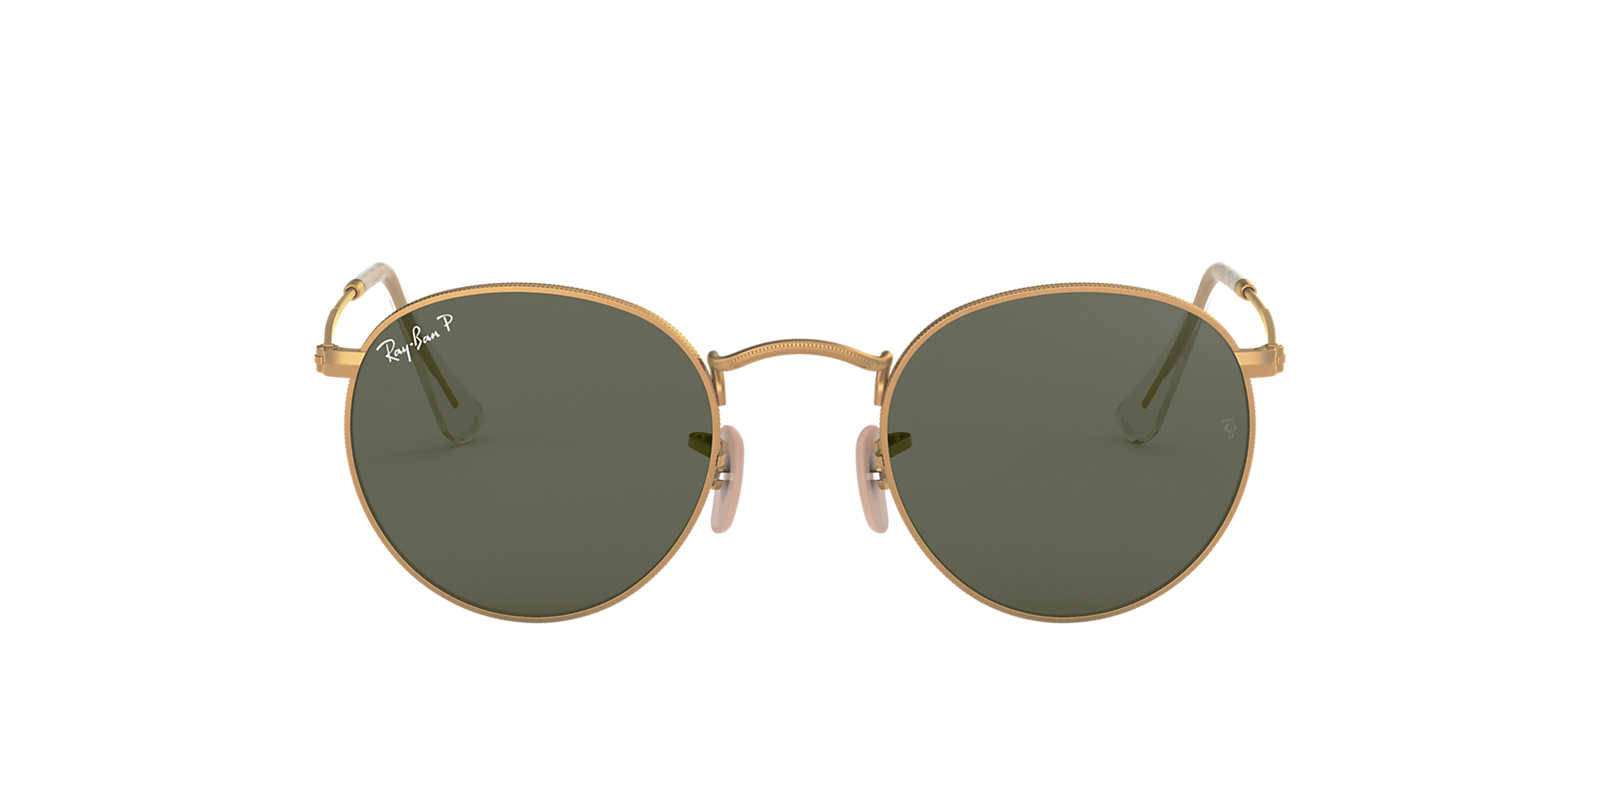 Ray ban sunglasses sale new zealand - Rb3447 50 Round Metal Rb3447 50 Round Metal Ray Ban